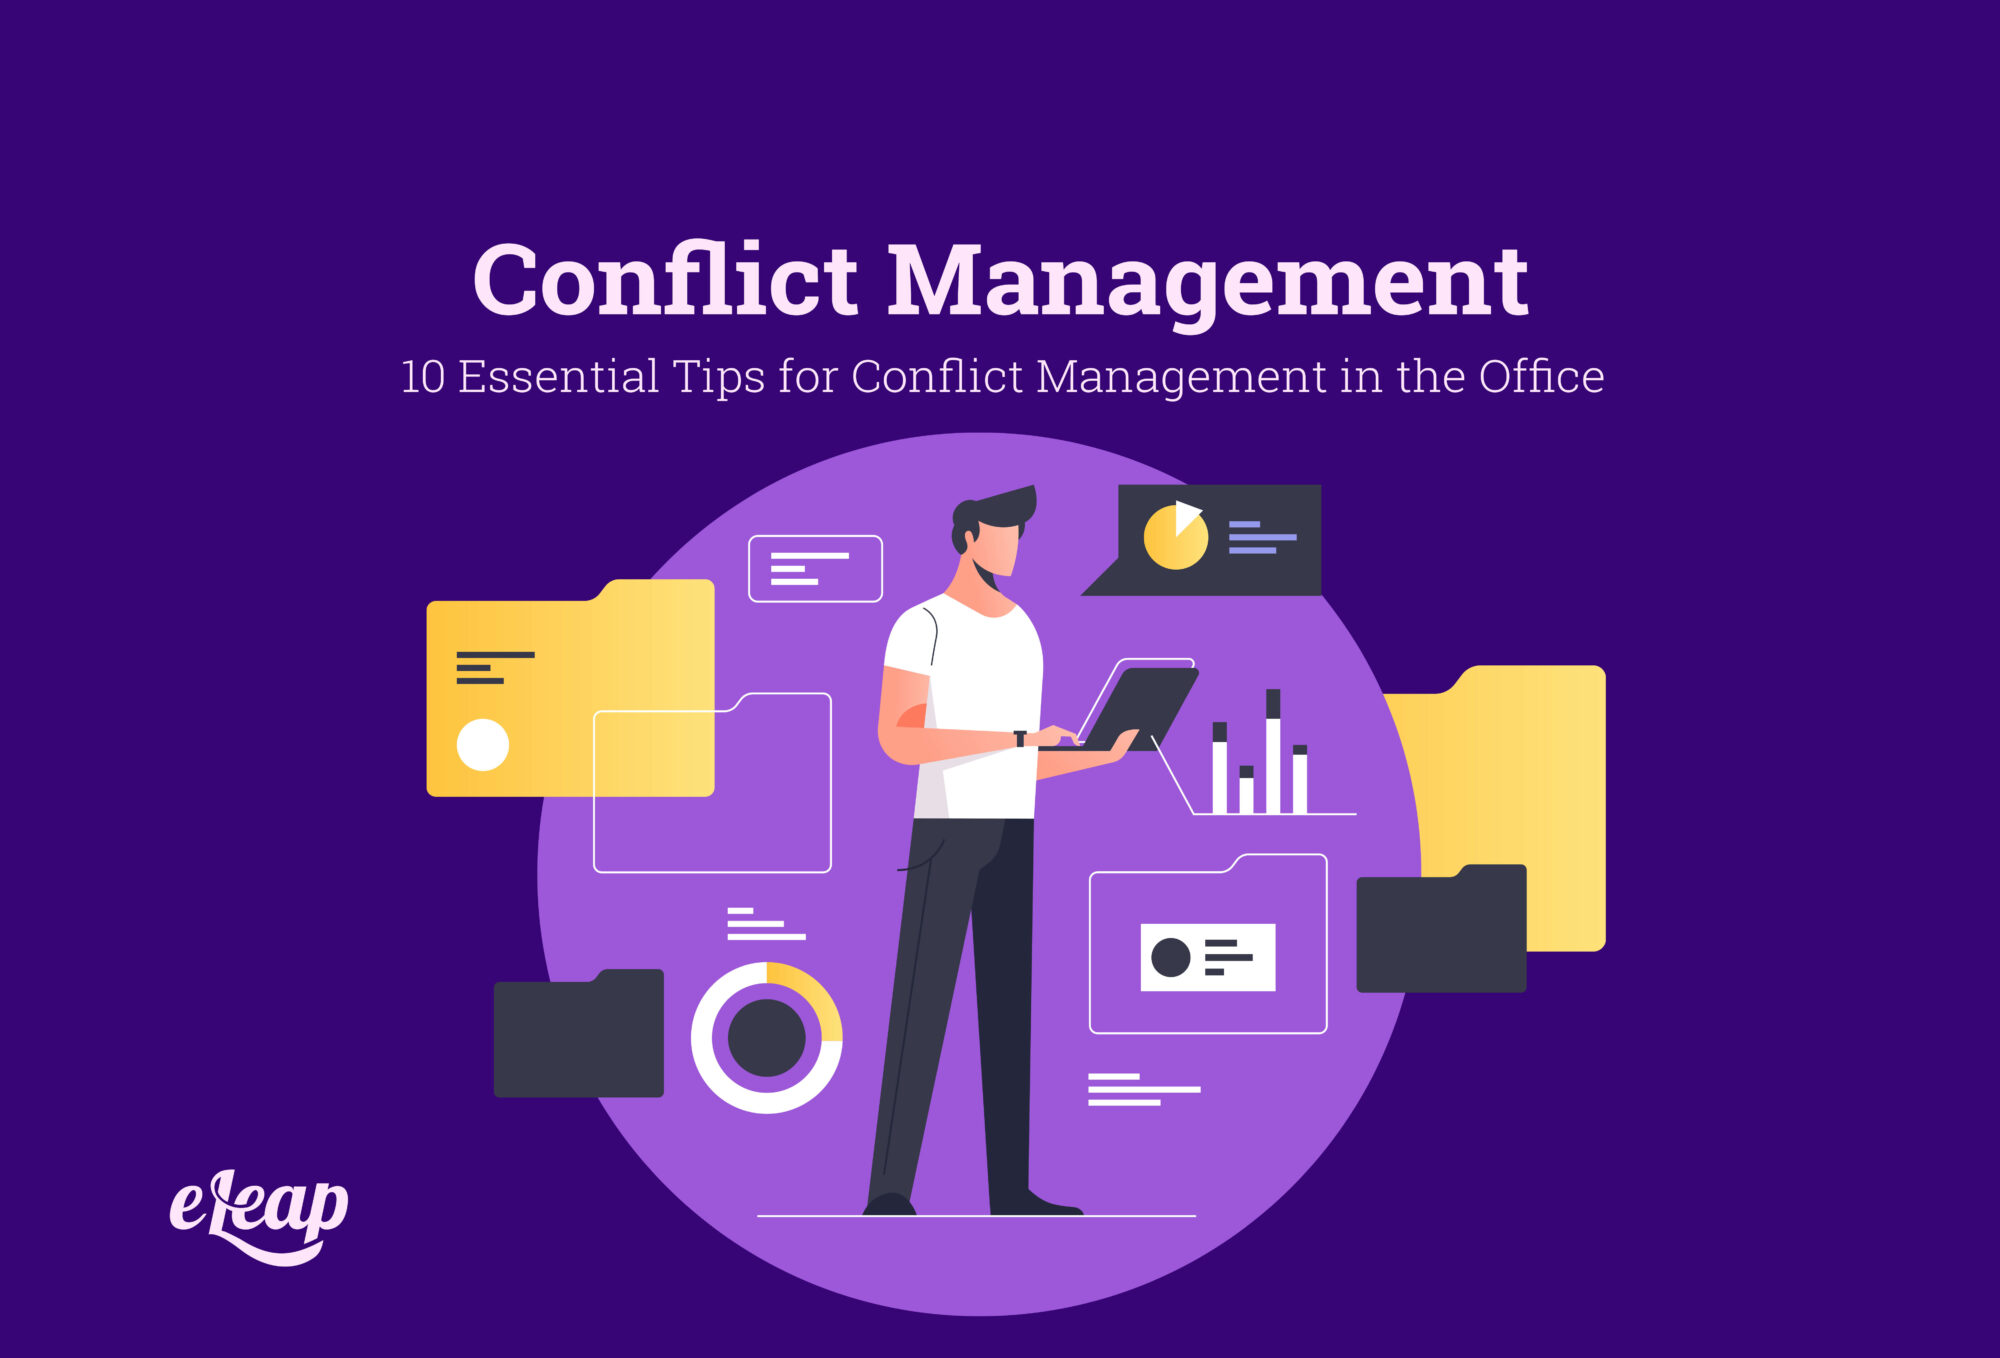 10 Essential Tips for Conflict Management in the Office